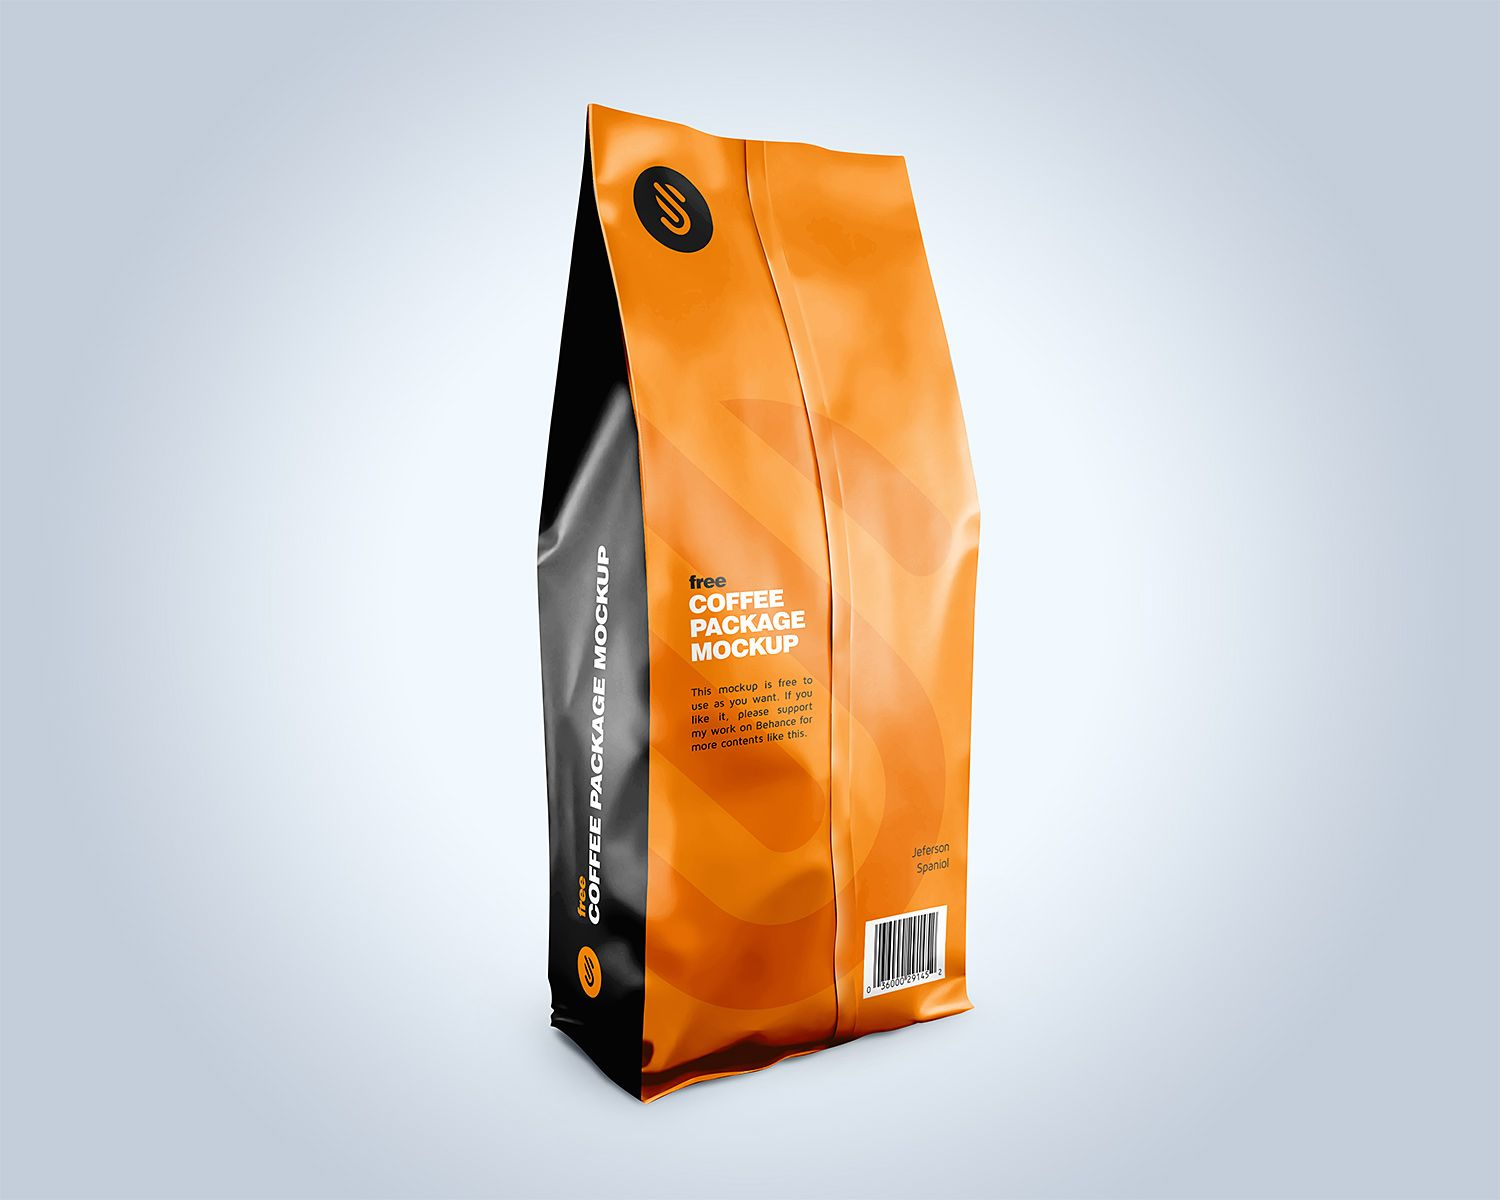 Download Free Coffee Pouch Packaging Mockup Pouch Packaging Free Coffee Packaging Mockup